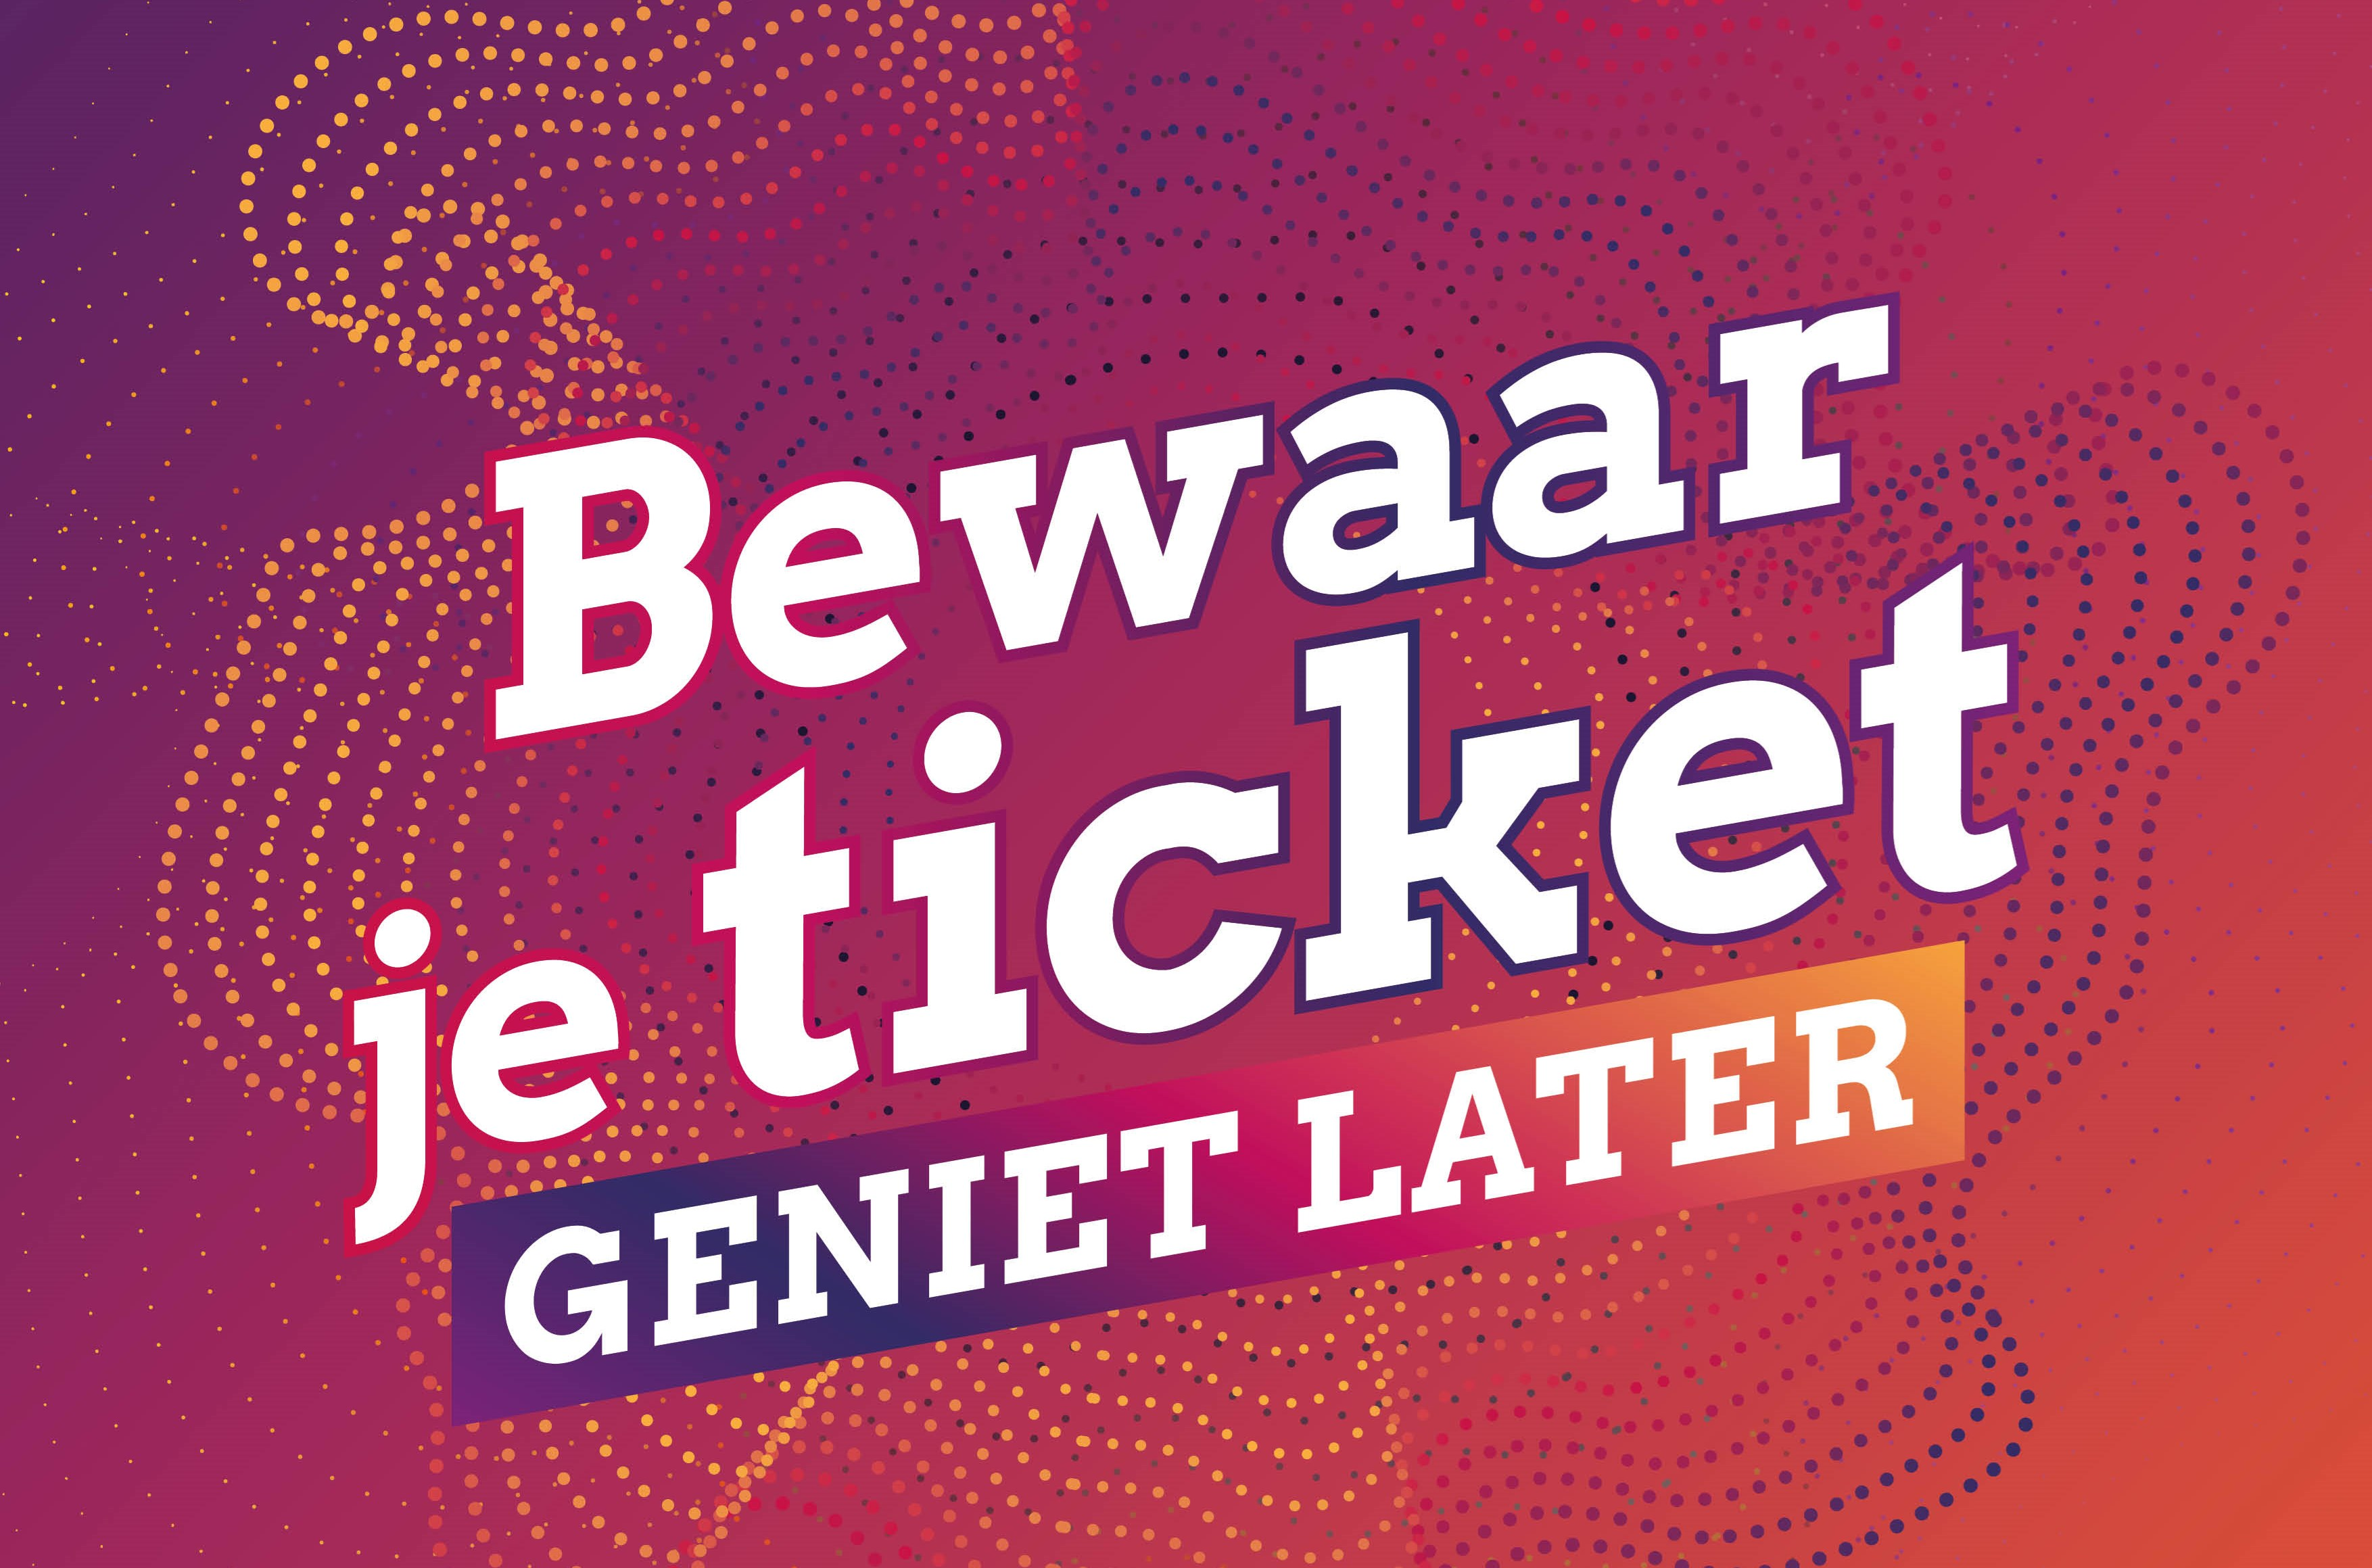 BewaarJeTicket_Visual_Licht.jpg